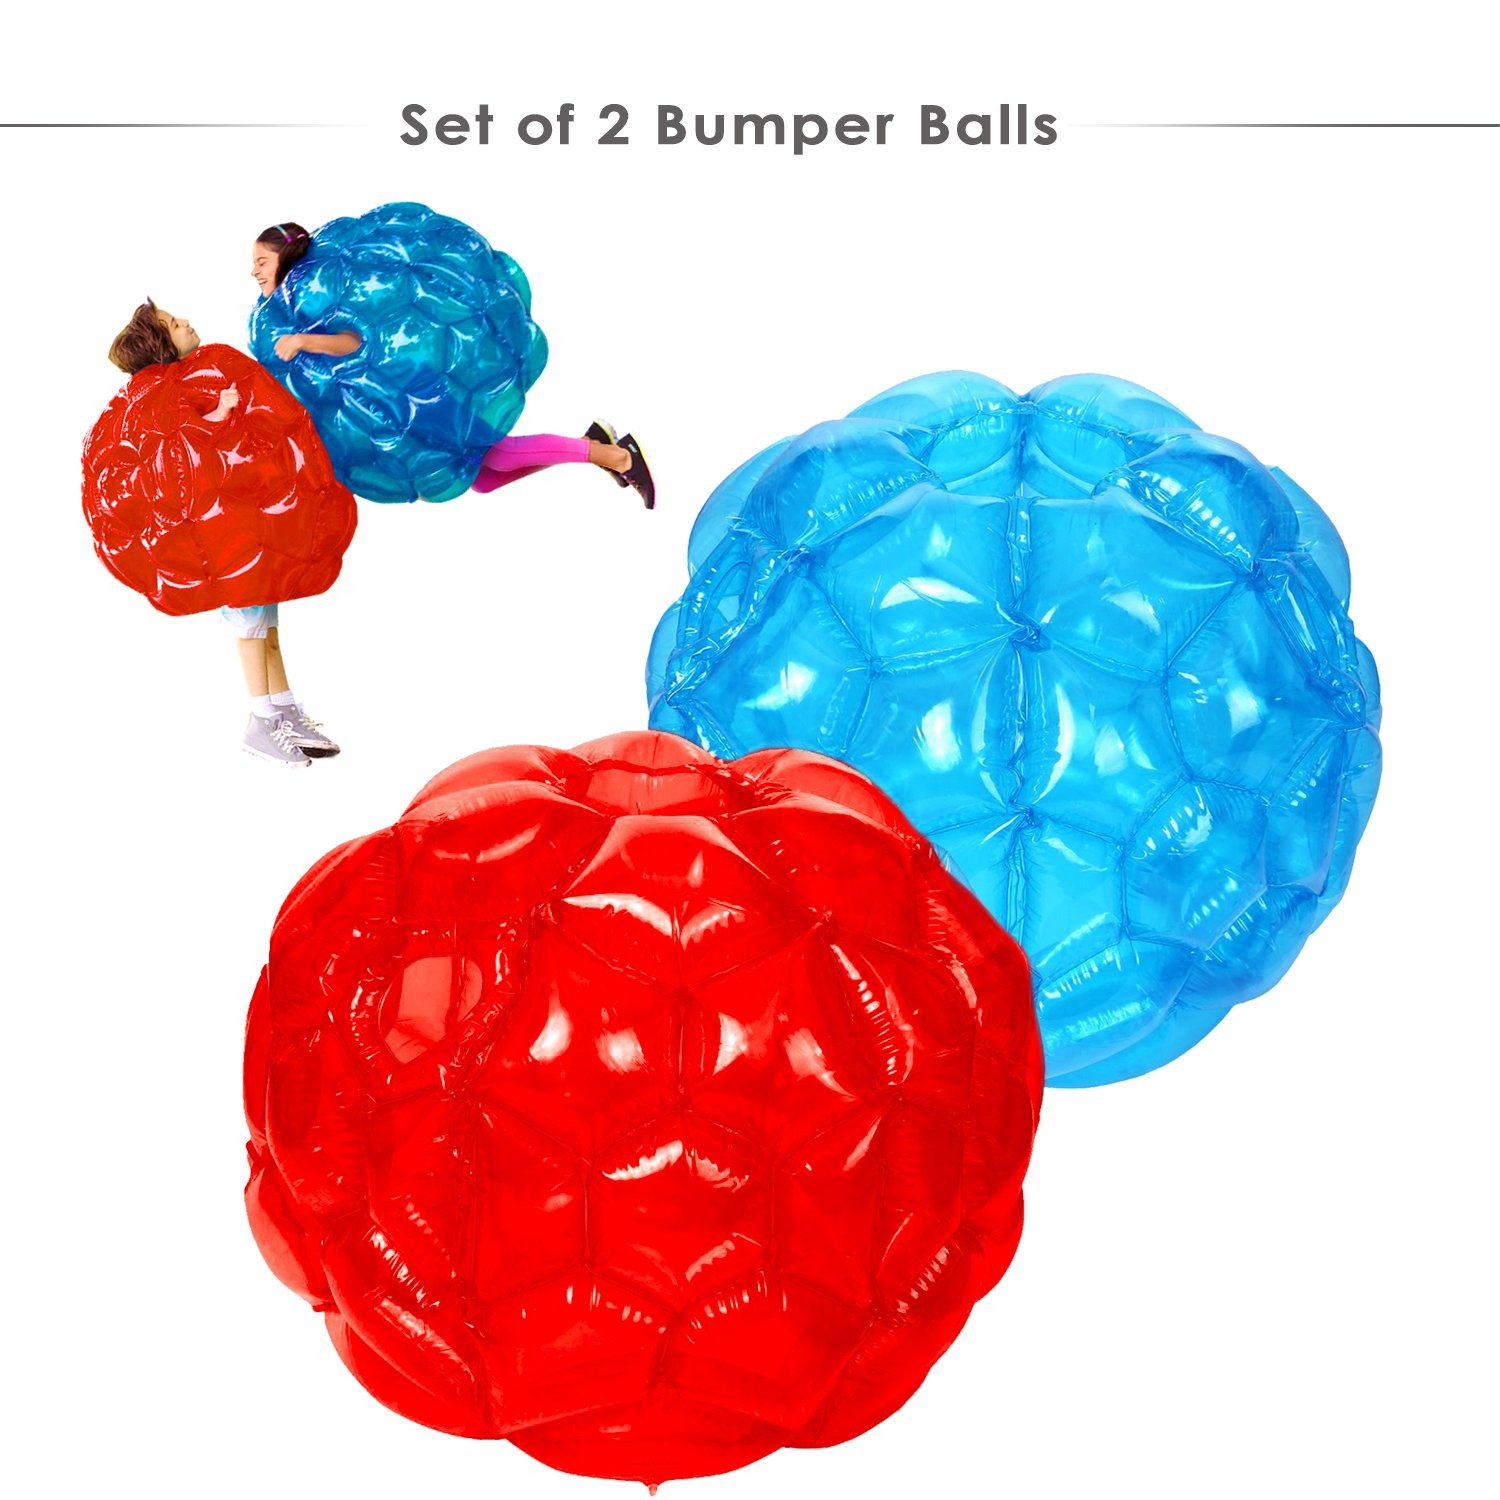 Inflatable 36'' Wearable Buddy Bumper Zorb Balls Heavy Duty Durable PVC Viny Bubble Soccer Outdoor Game (2-Pack,Blue&Red)) ... by Holleyweb (Image #8)